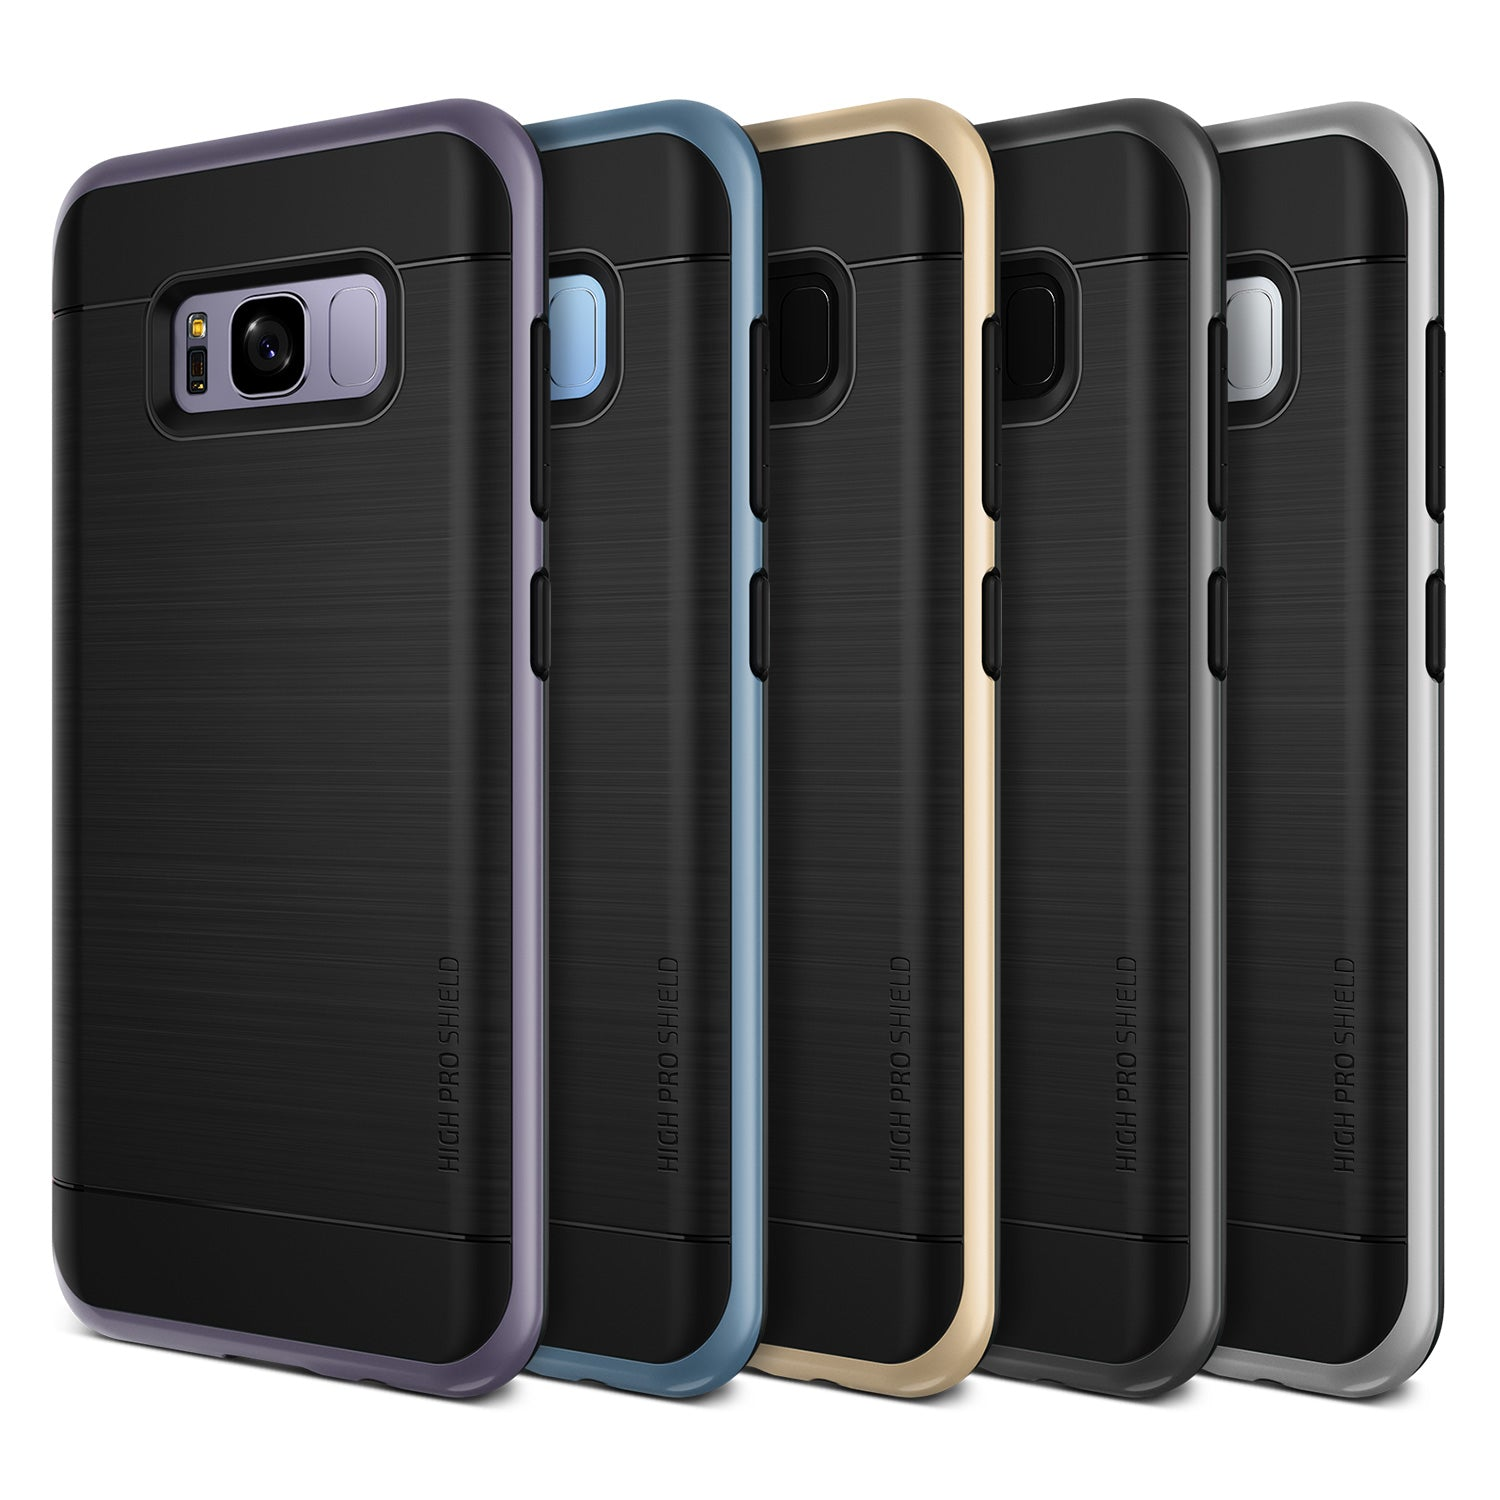 High Pro Shield Galaxy S8 case from VRS Design